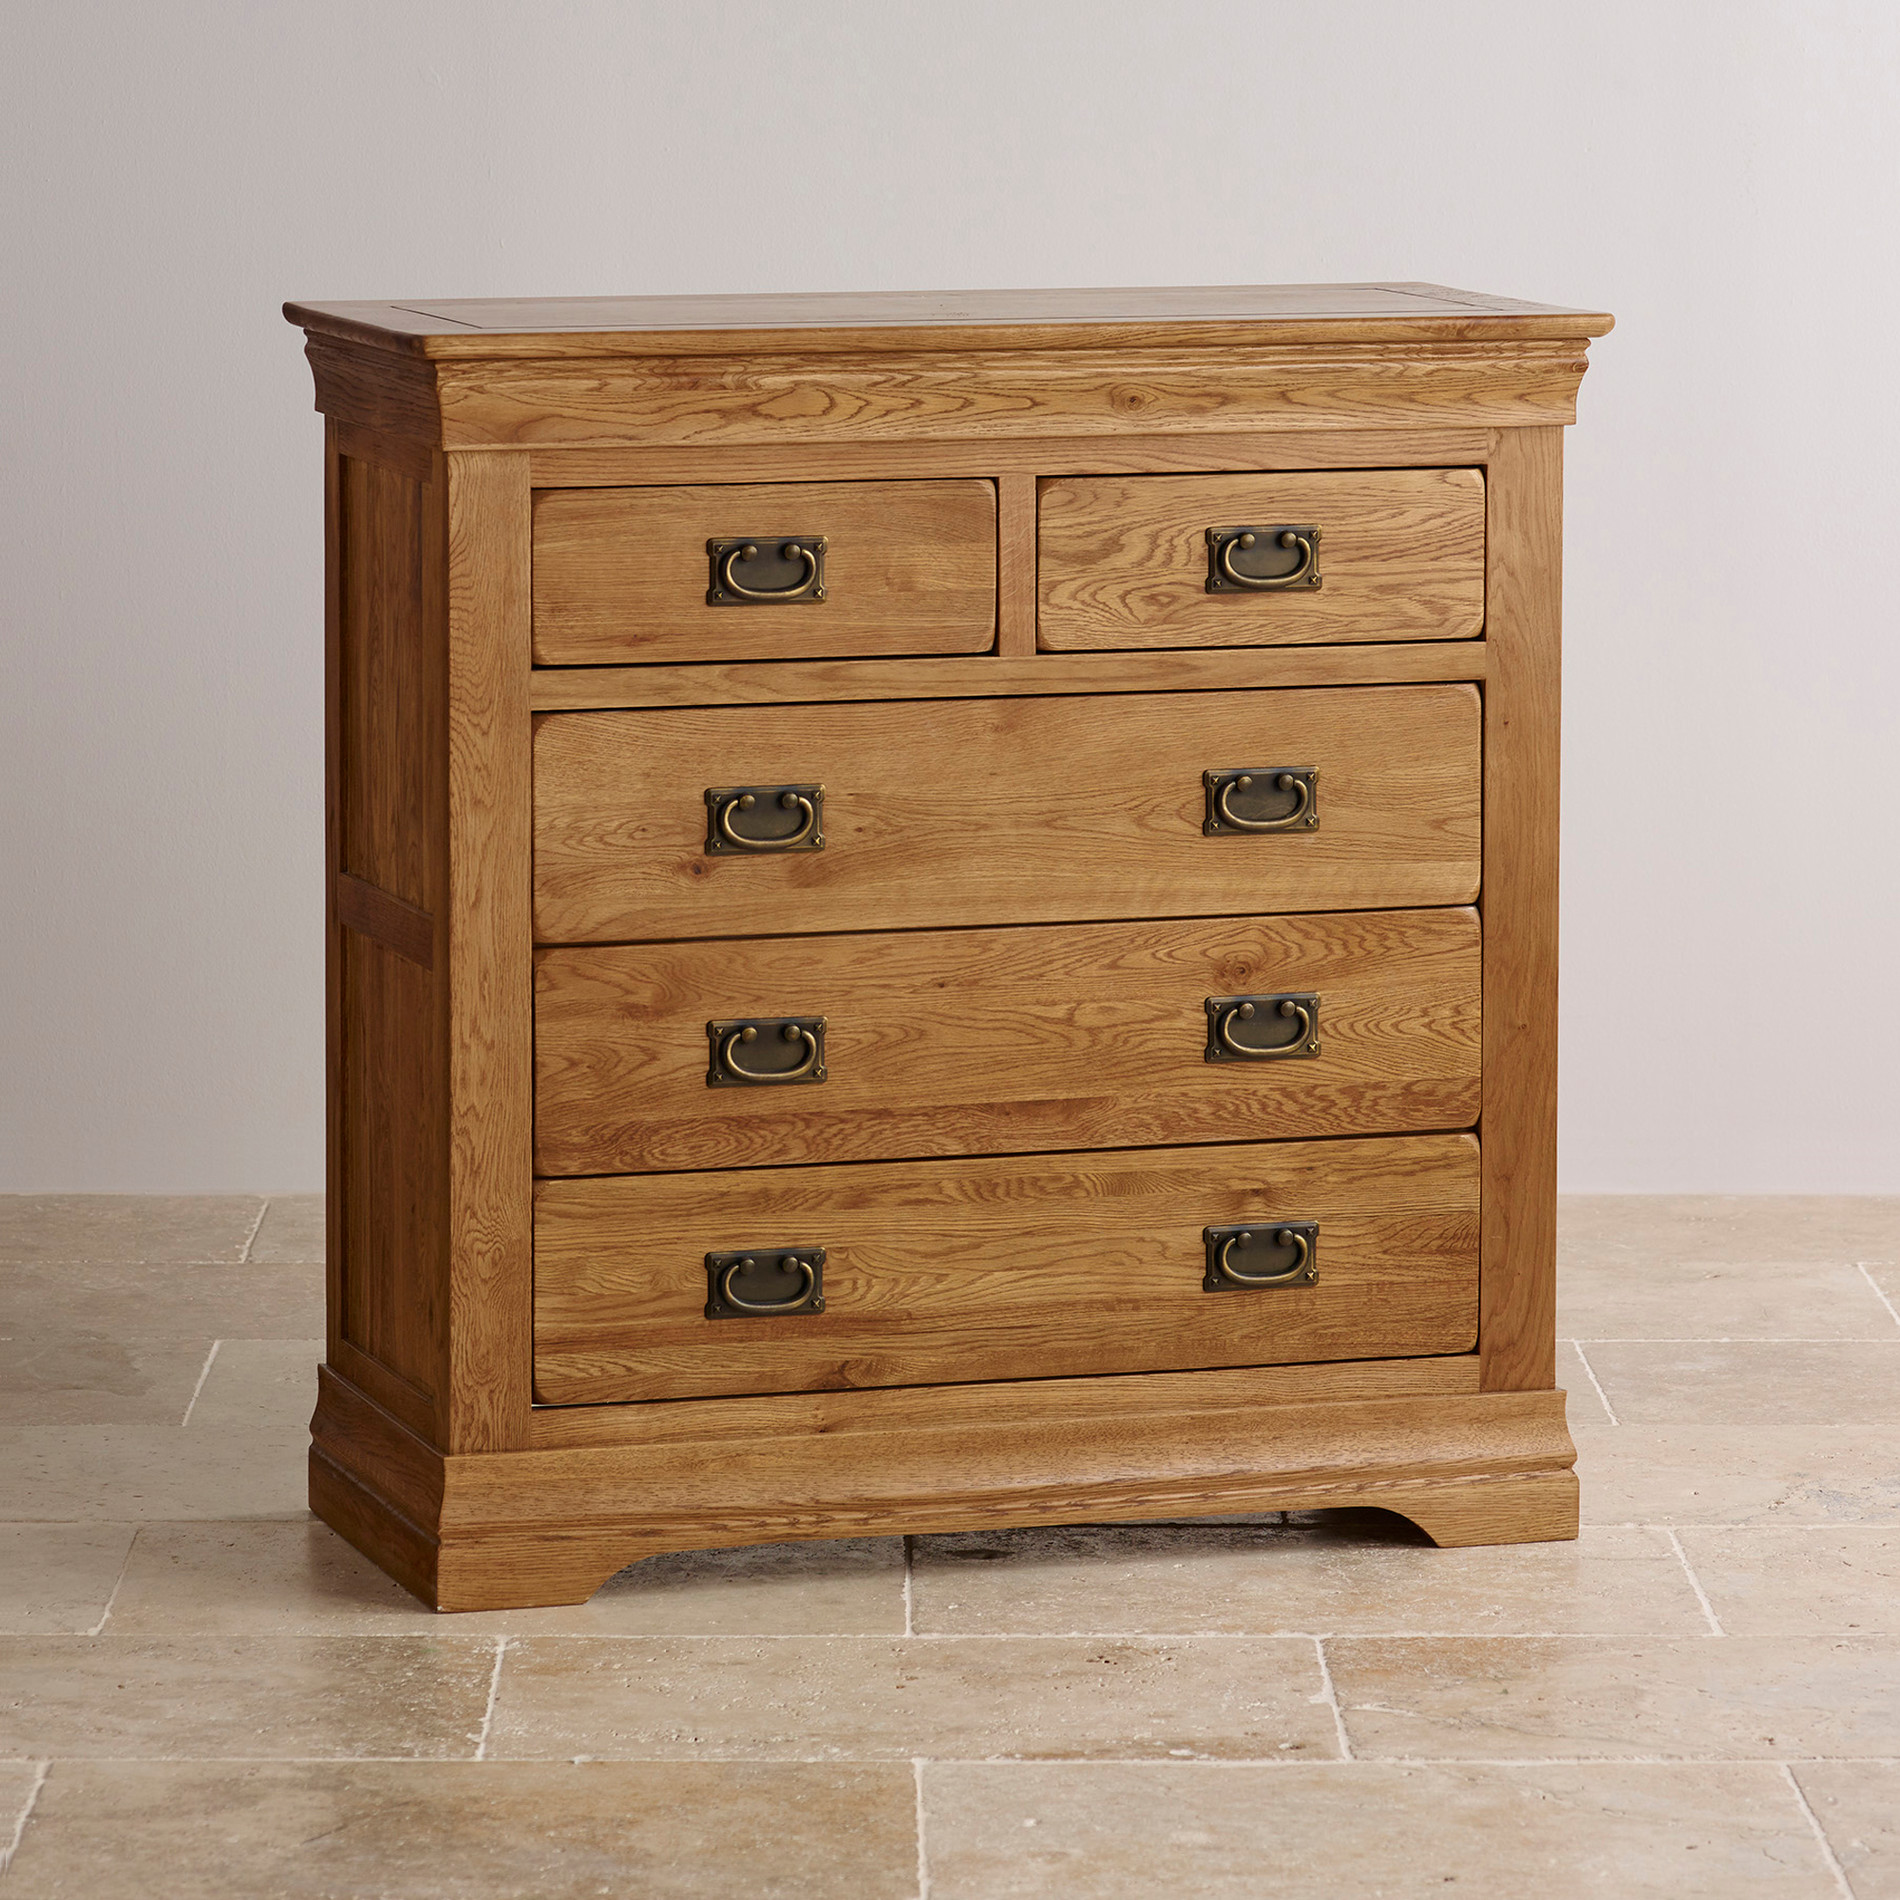 Chest of drawers – a symbol of aristocracy